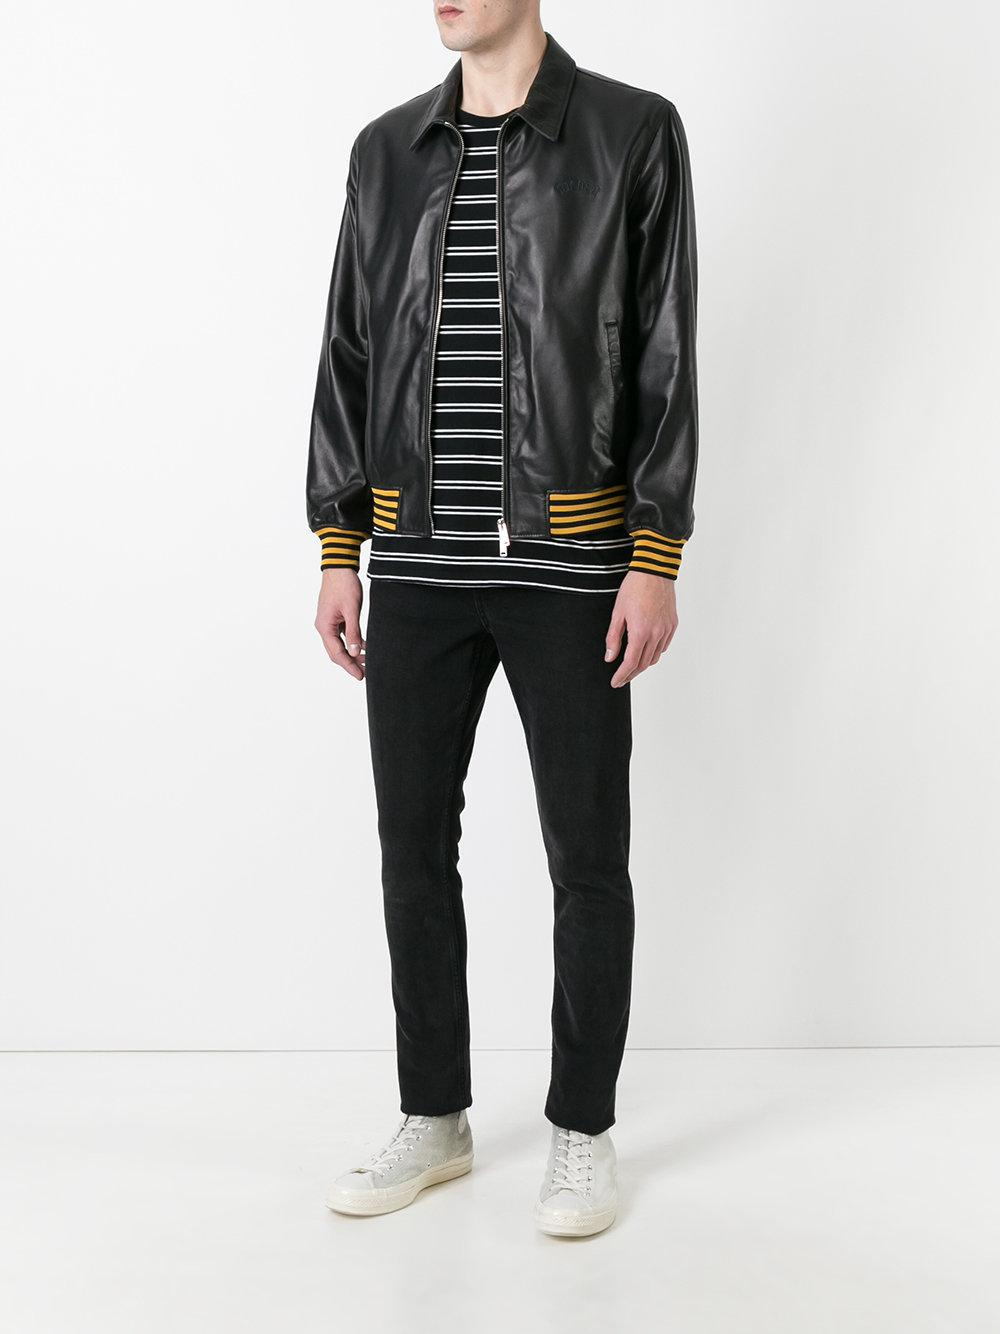 Golden Goose Deluxe Brand Leather Coach Jacket in Brown for Men